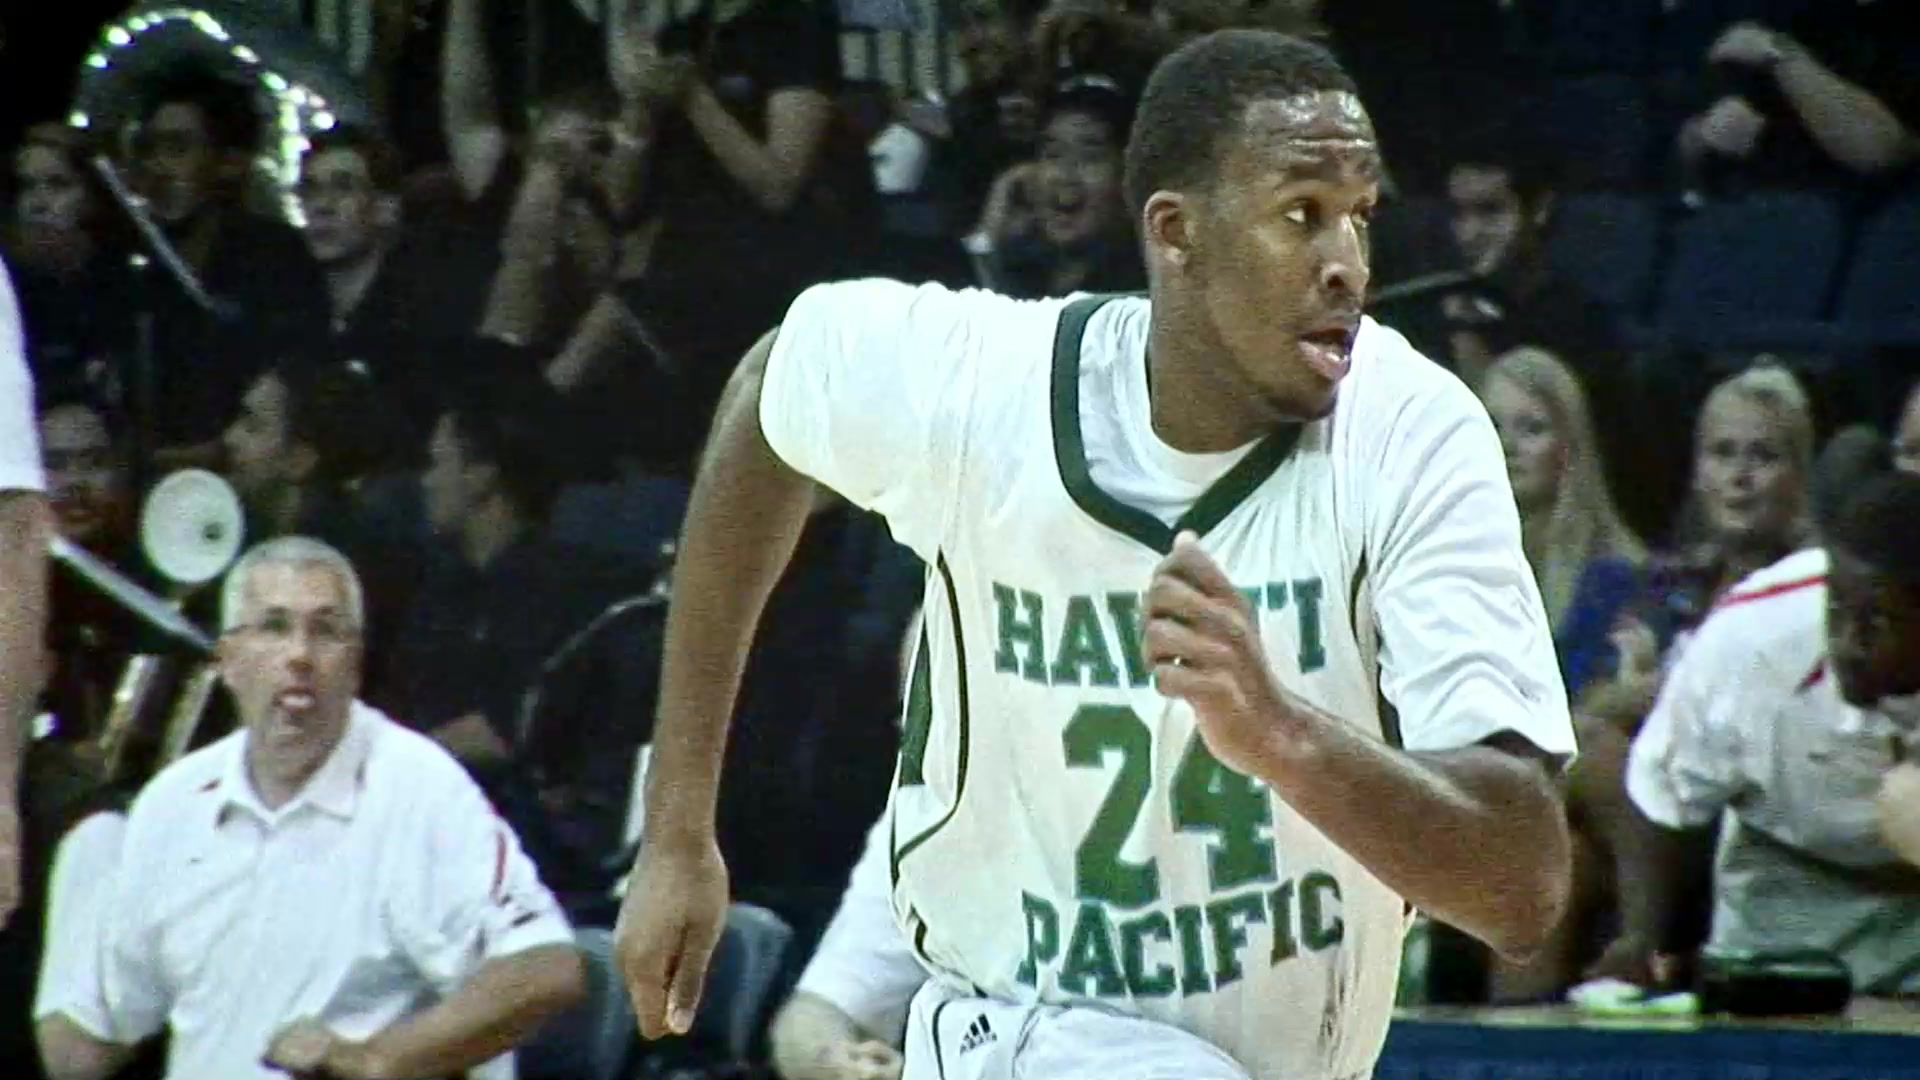 Kyle Allen running while playing in a basketball game for Hawai'i Pacific University.